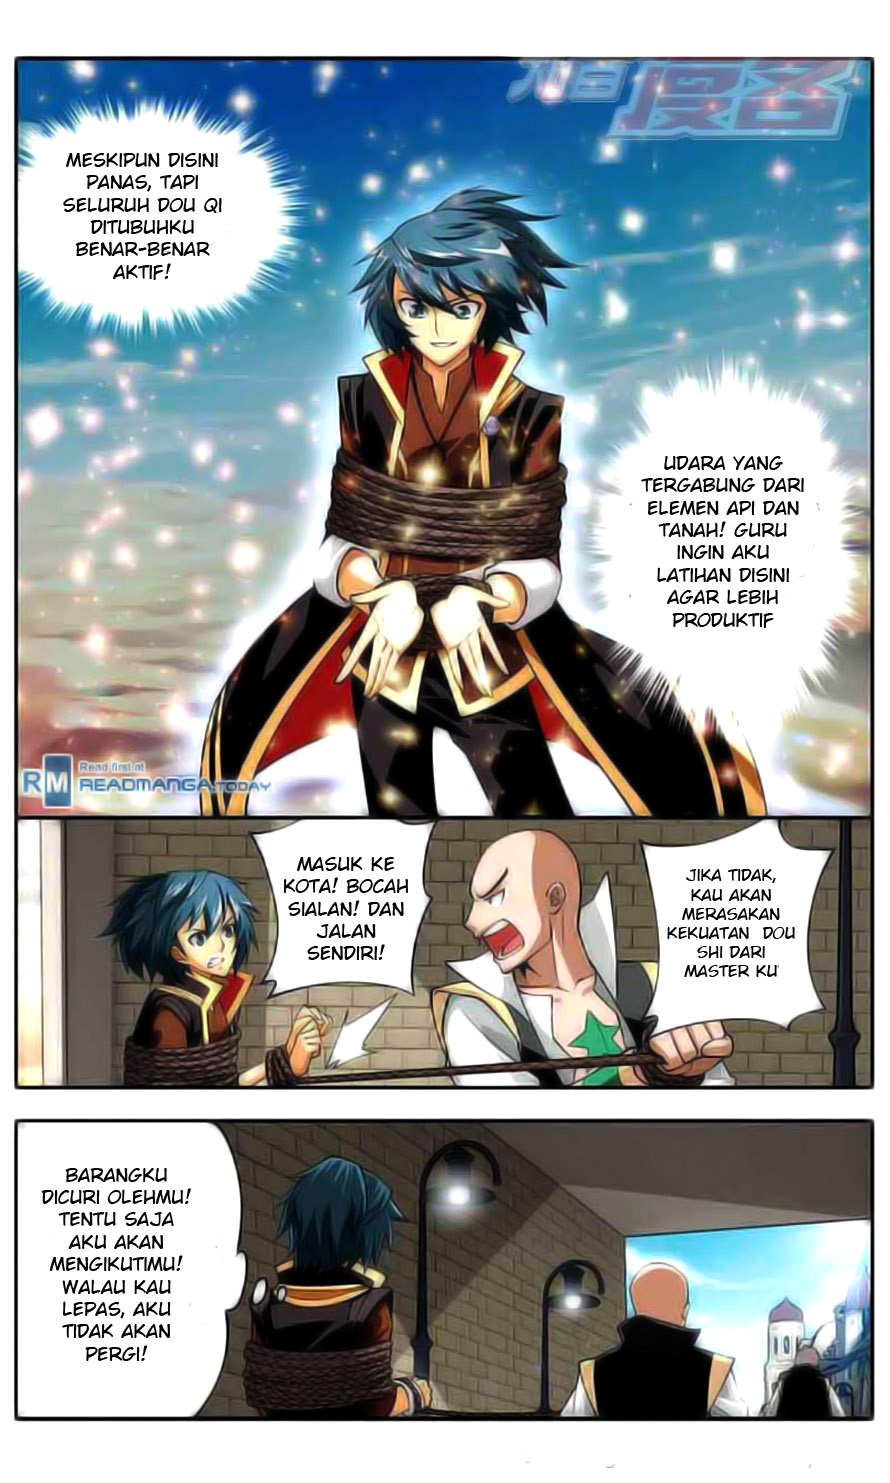 Dilarang COPAS - situs resmi www.mangacanblog.com - Komik battle through heaven 038 - chapter 38 39 Indonesia battle through heaven 038 - chapter 38 Terbaru 15|Baca Manga Komik Indonesia|Mangacan